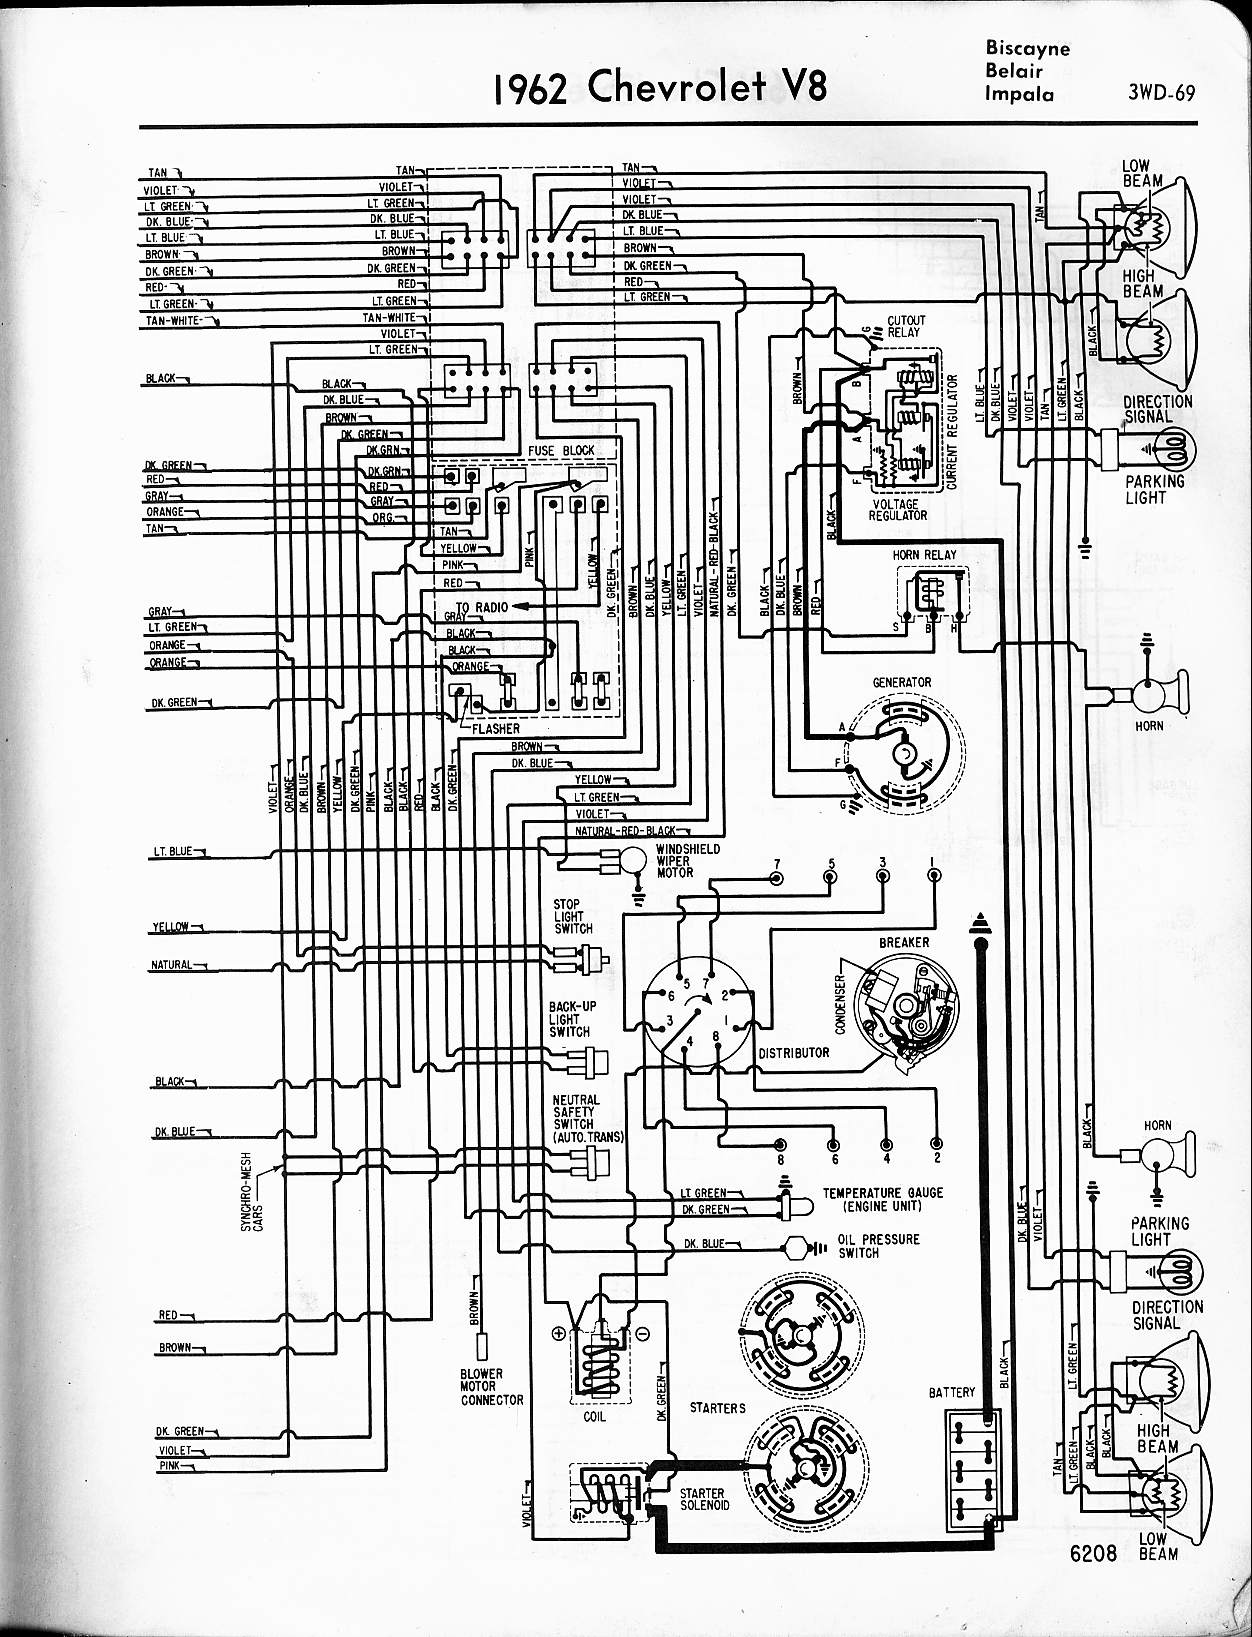 windshield wiper wiring diagram for 2003 chevy impala schematics rh  parntesis co 2006 Pontiac G6 Fuse Box Location 2008 Impala Fuse Block Relay